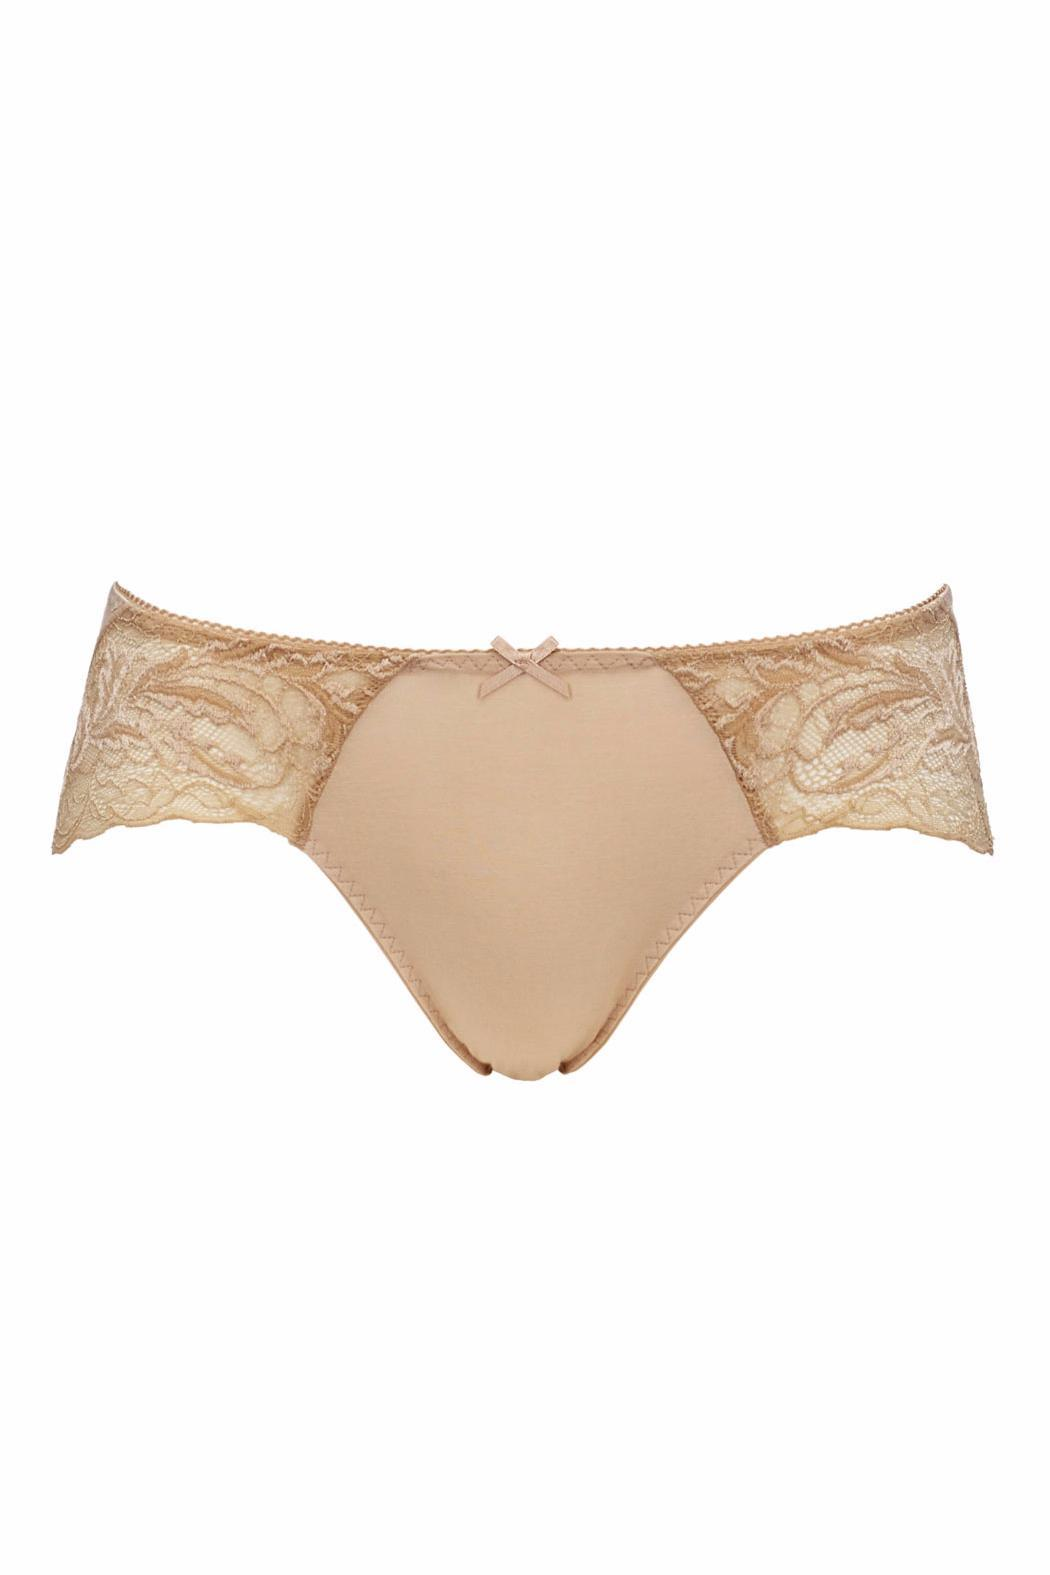 3947d03961a8 Bradelis New York Hilary Panty from SoHo — Shoptiques